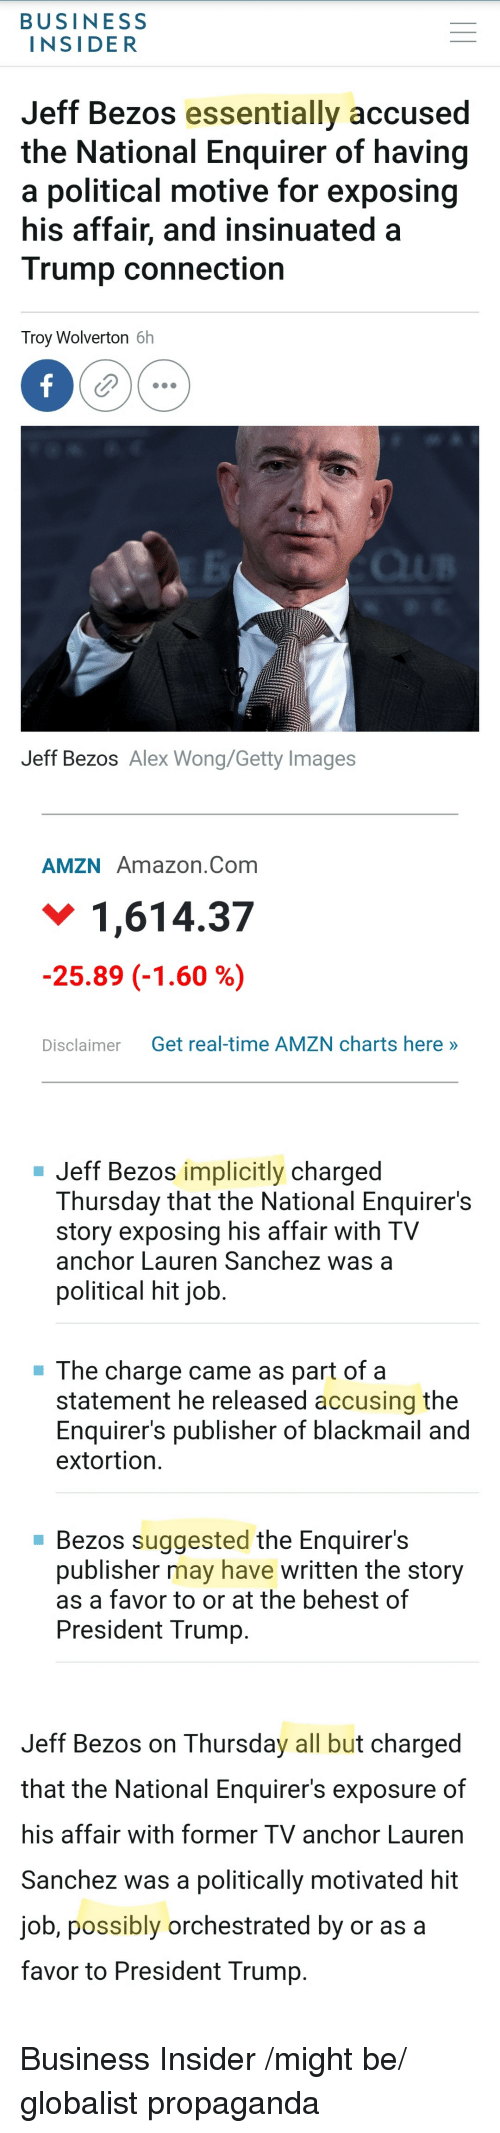 BUSINESS INSIDER Jeff Bezos Essentially Accused the National